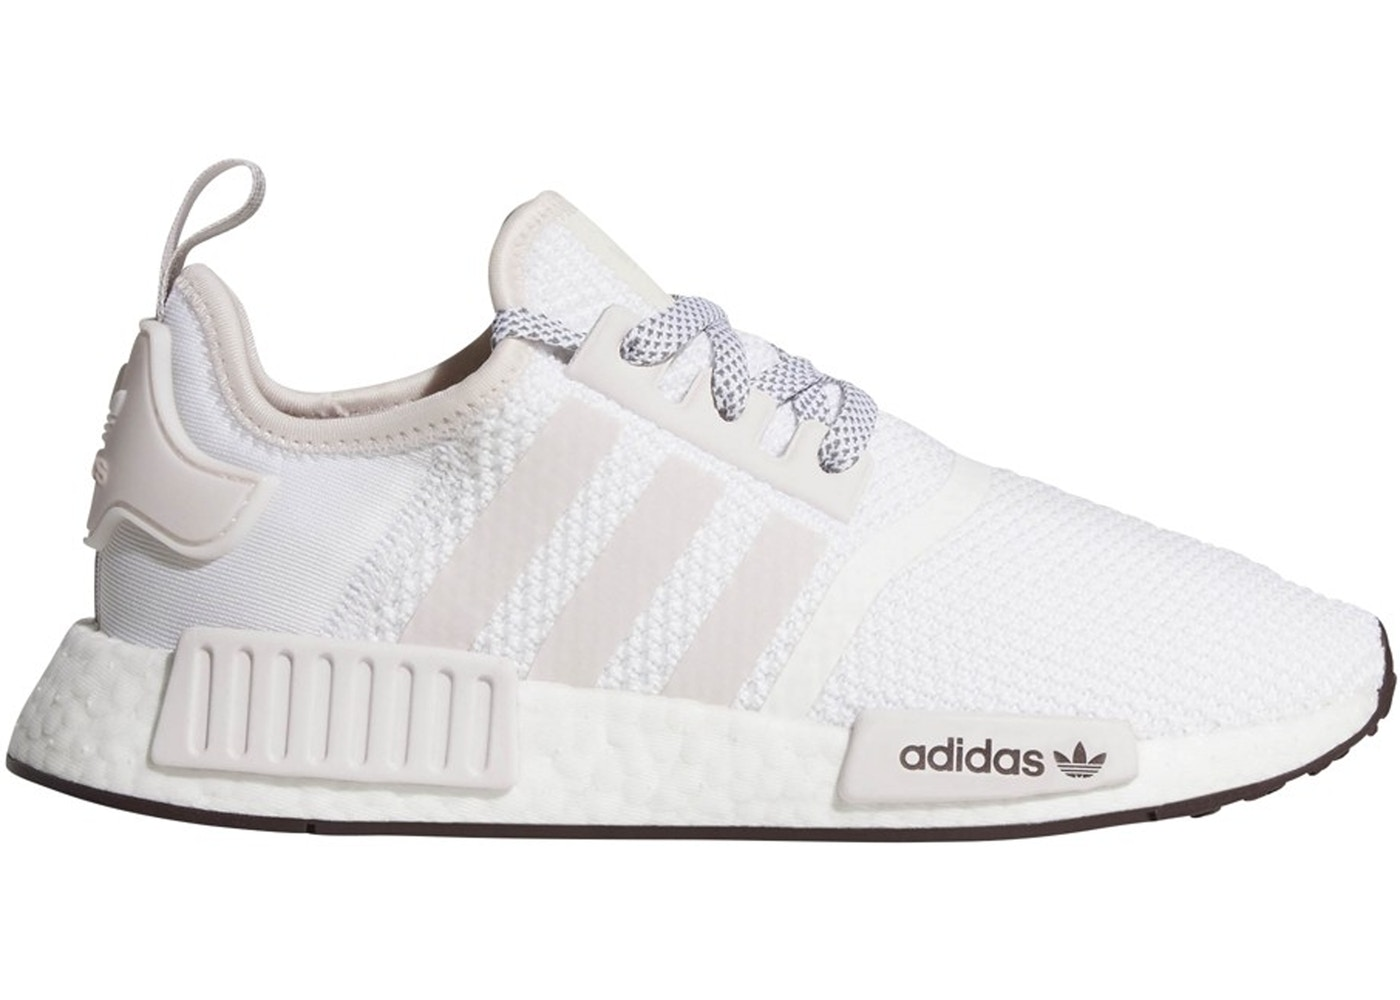 8bb4f37df adidas NMD Size 11 Shoes - Lowest Ask